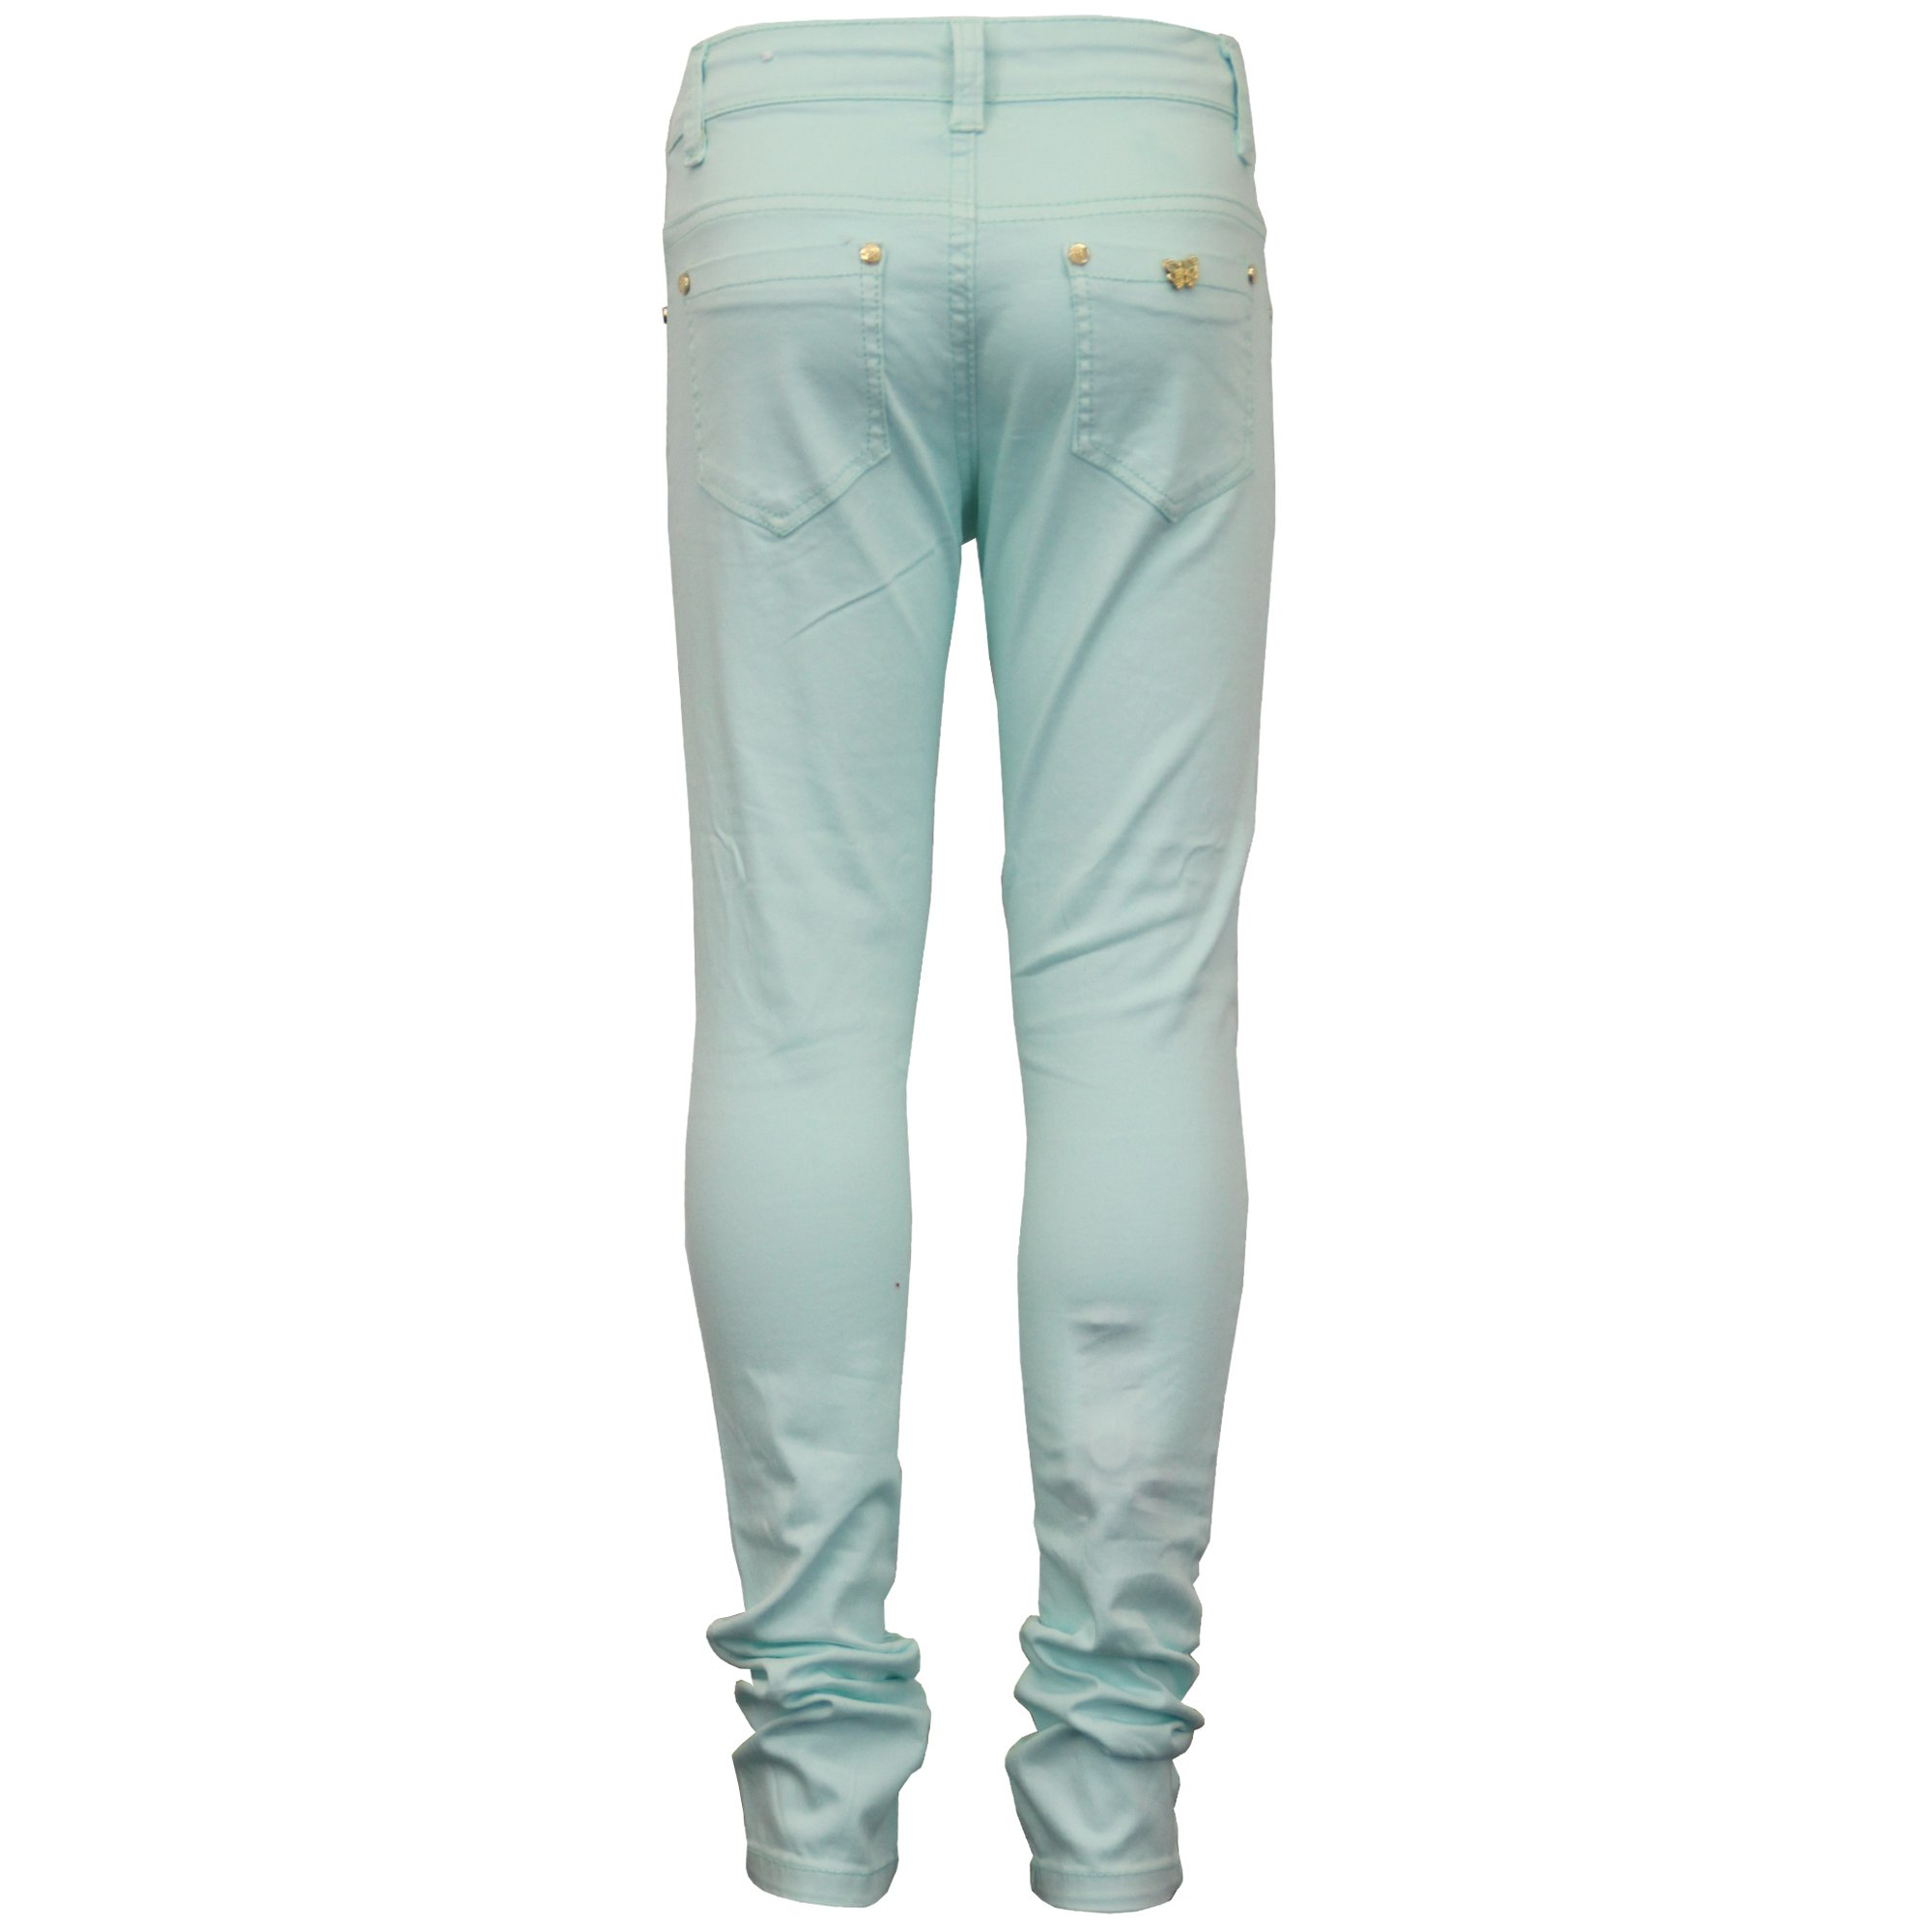 Kid's Look Girls' Jeans BV03 Mint Size 4-3/4 Years